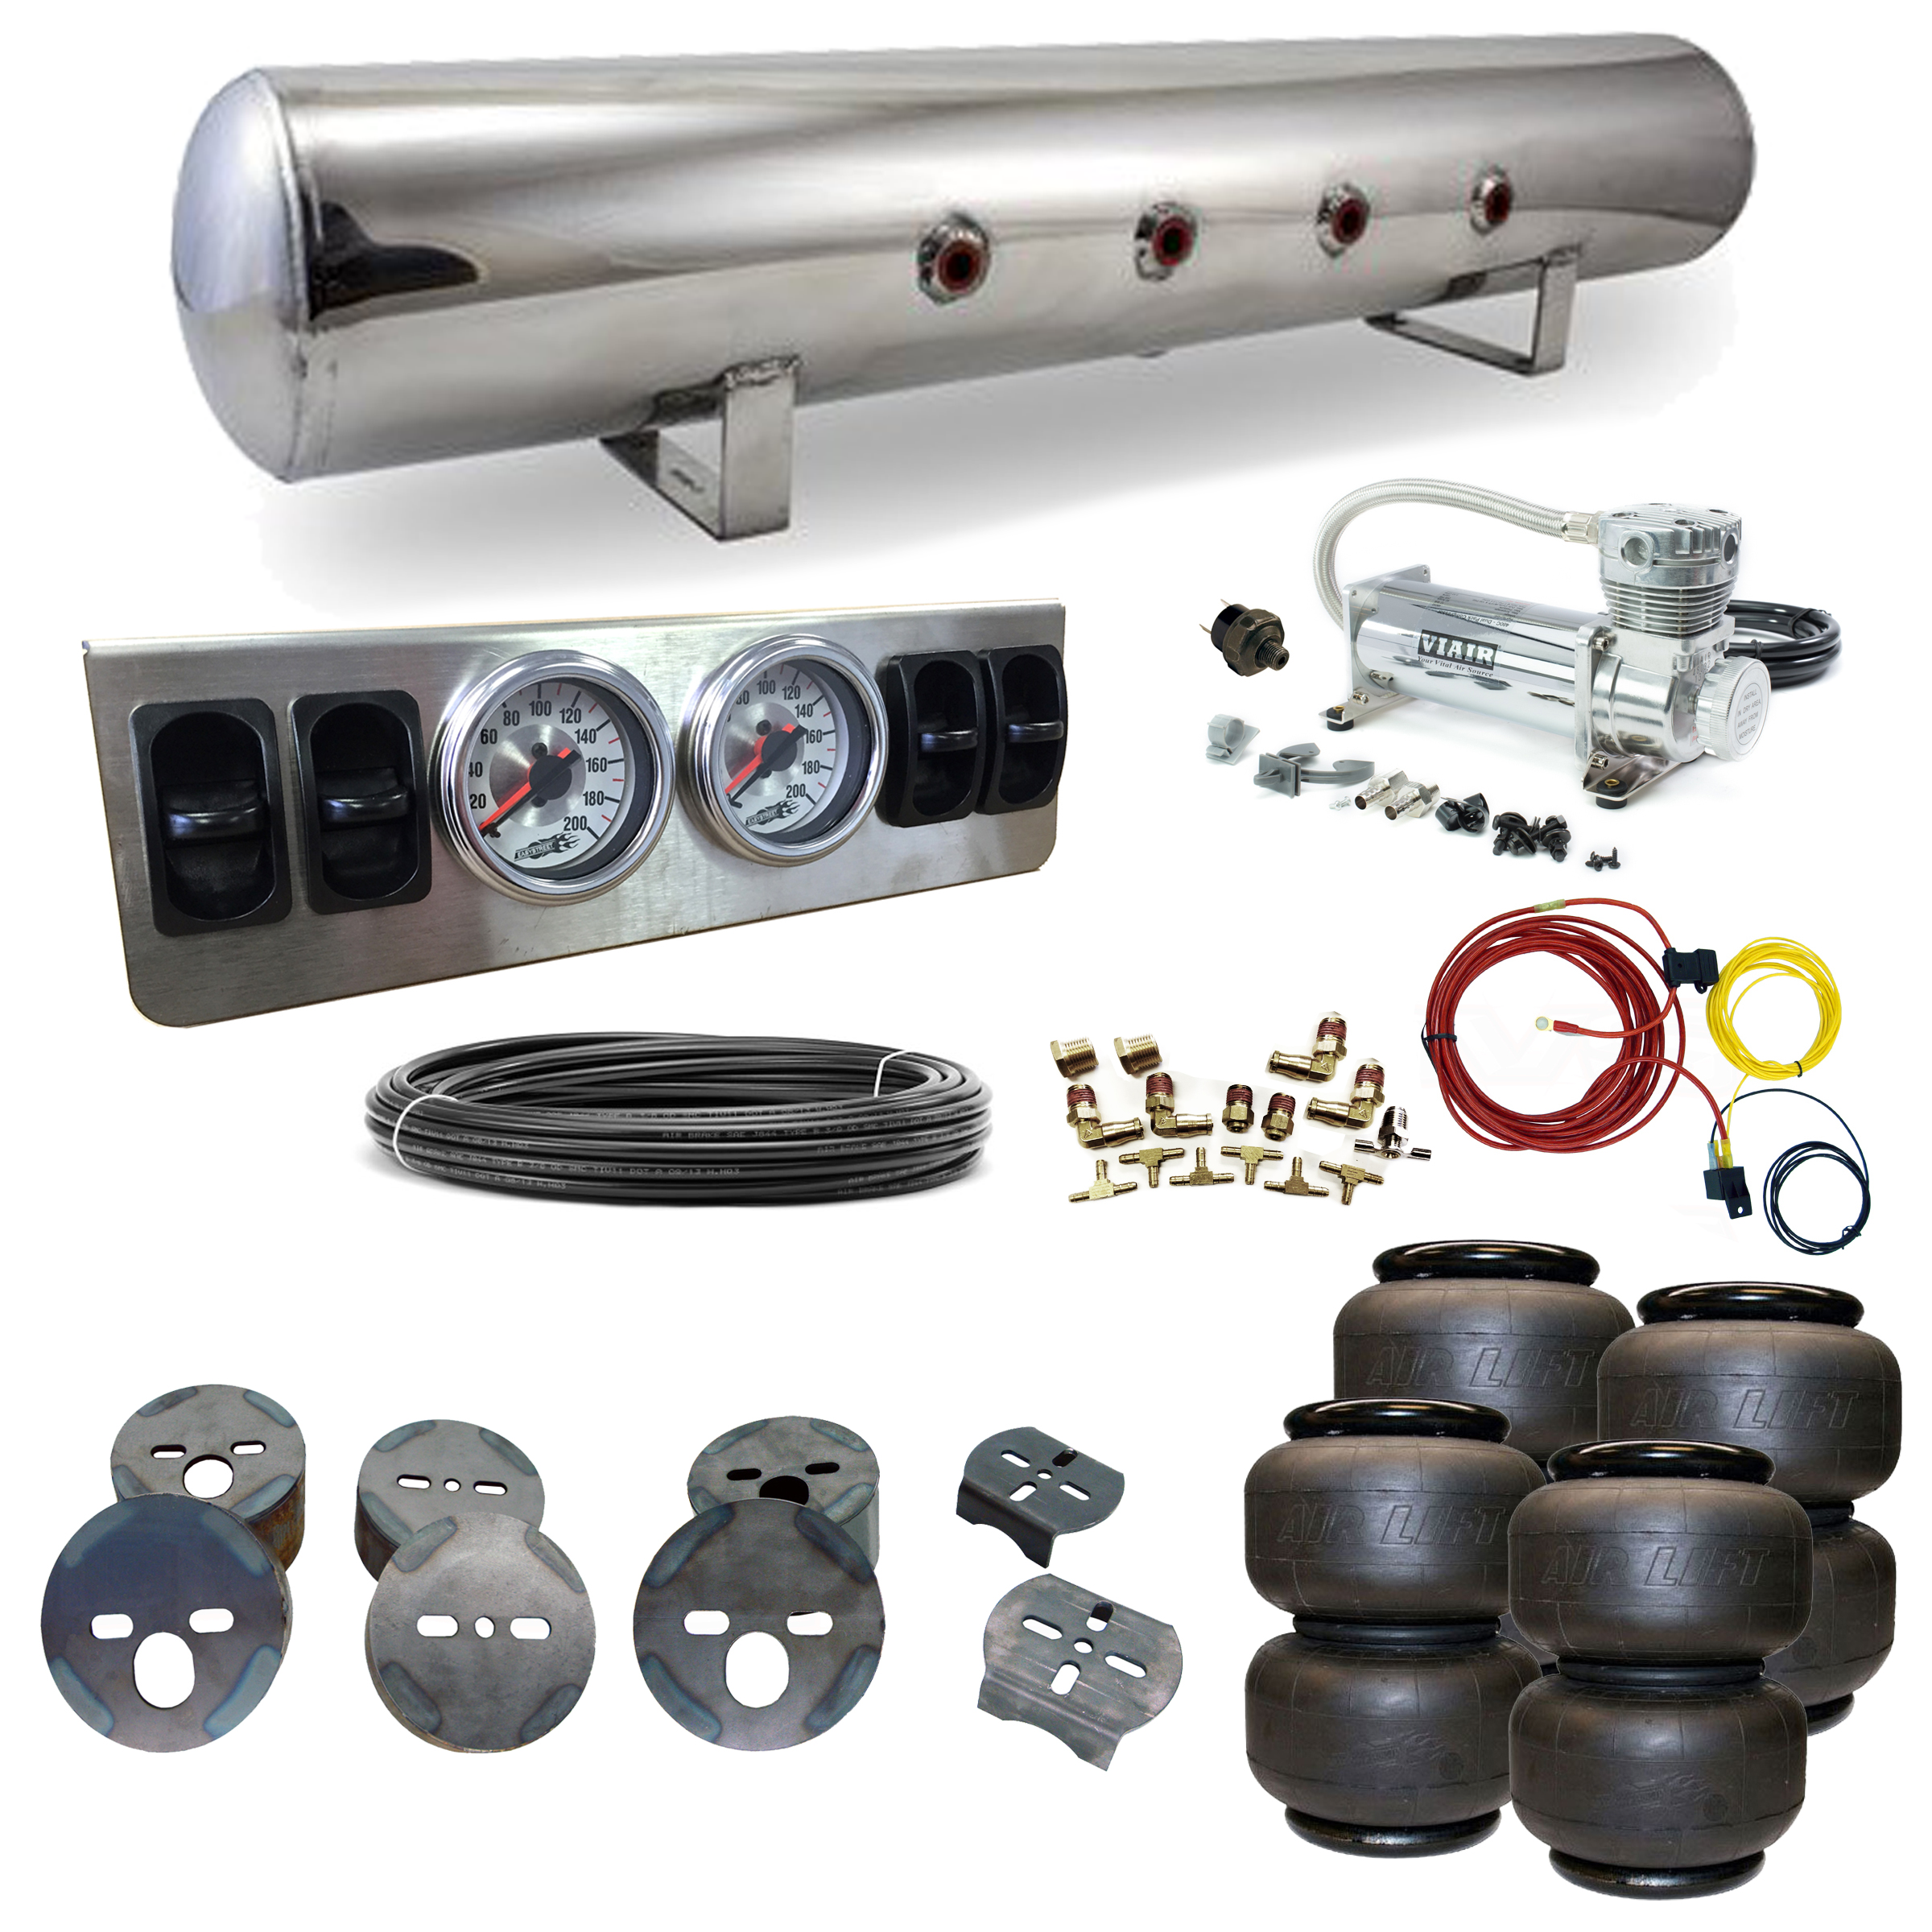 Stage 1 Air Suspension System- 77-96 Impala, Caprice, B-Body